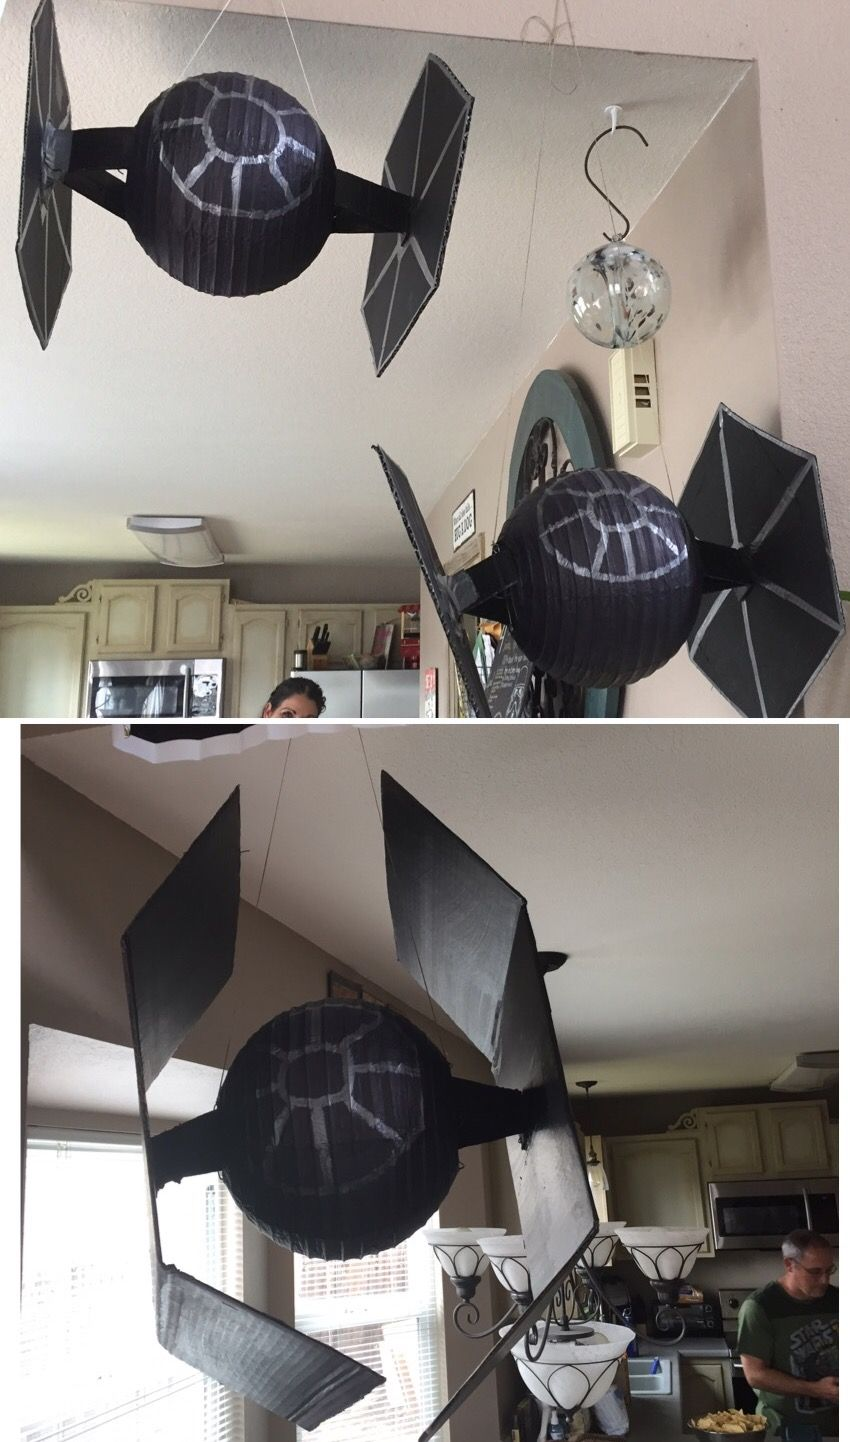 Paper Lantern Tie Fighter Decorations Stars Wars Party Decorations